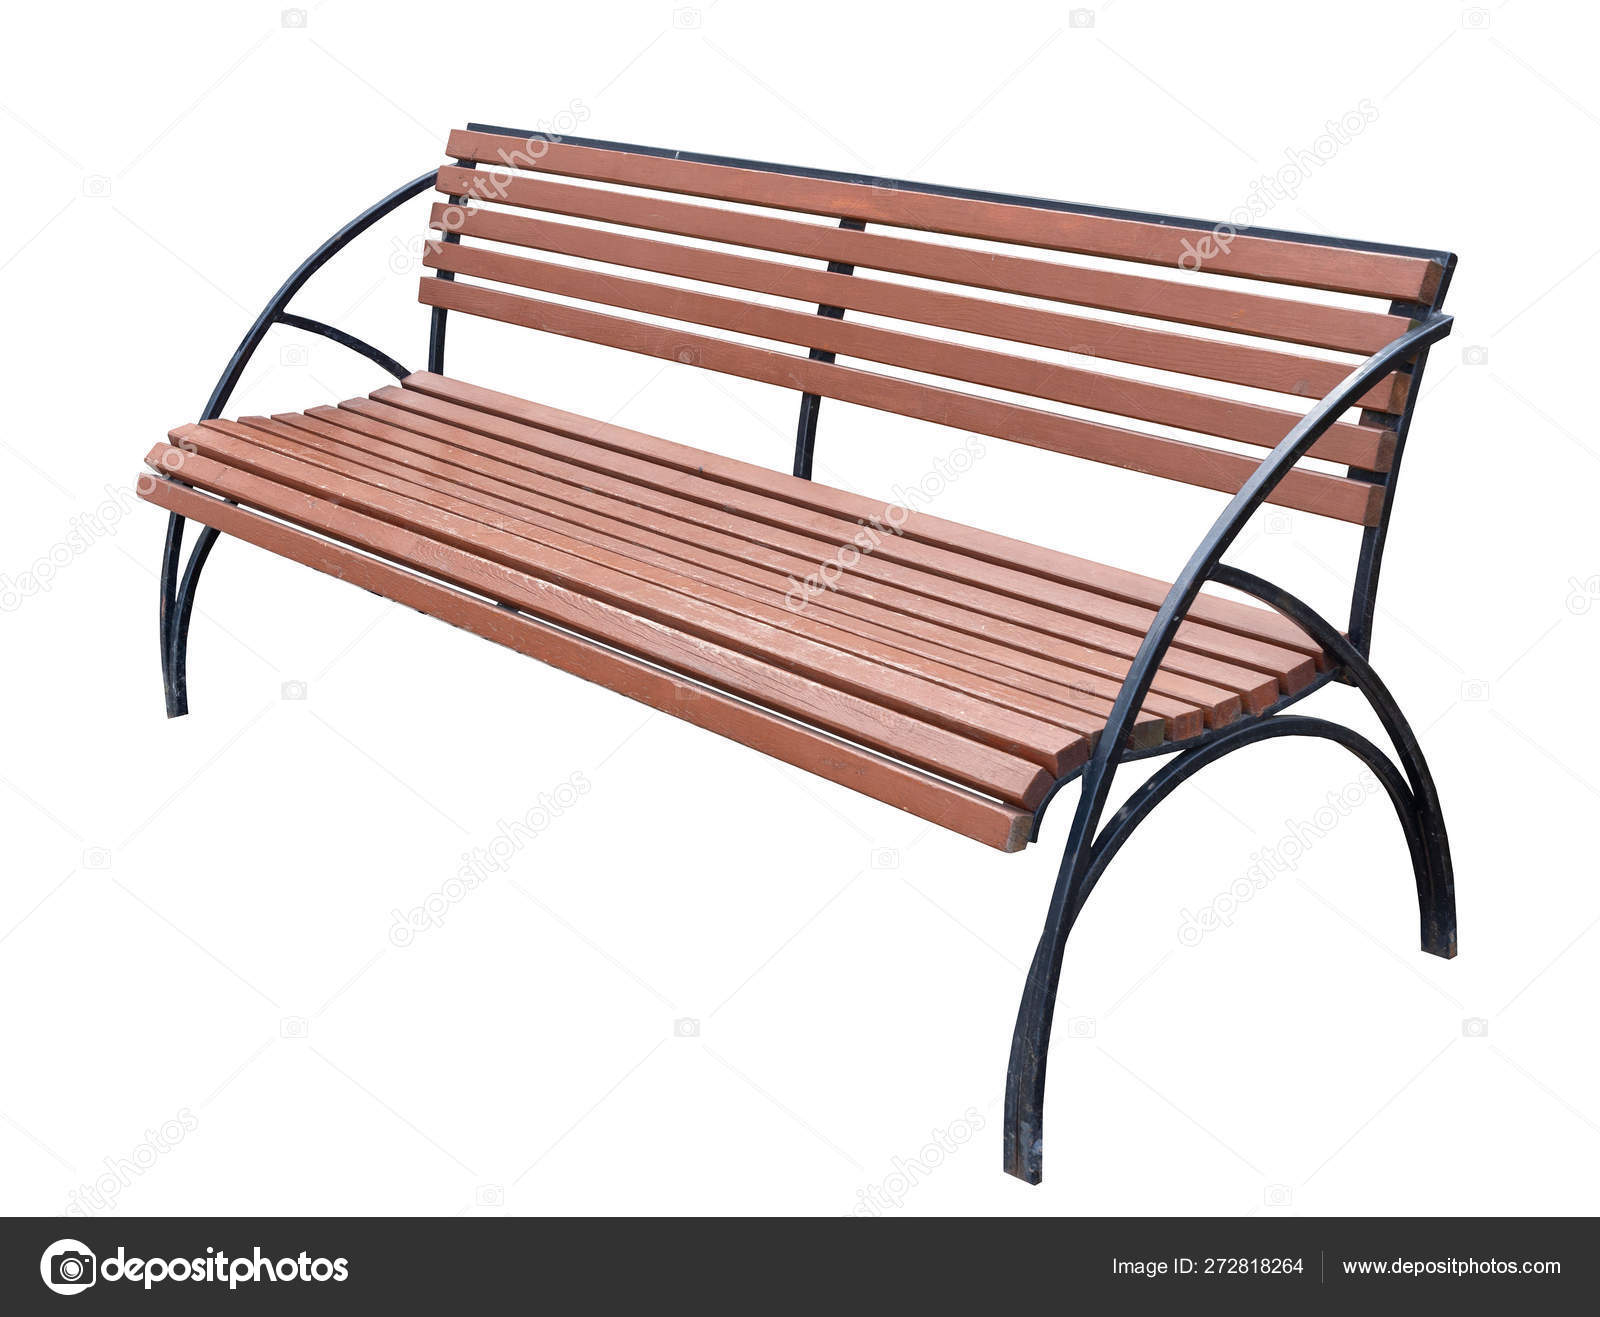 Picture of: Simple Bench Of Metal Parts And Wooden Bars Painted With Brown Paint Stock Photo C Busurmanov 272818264